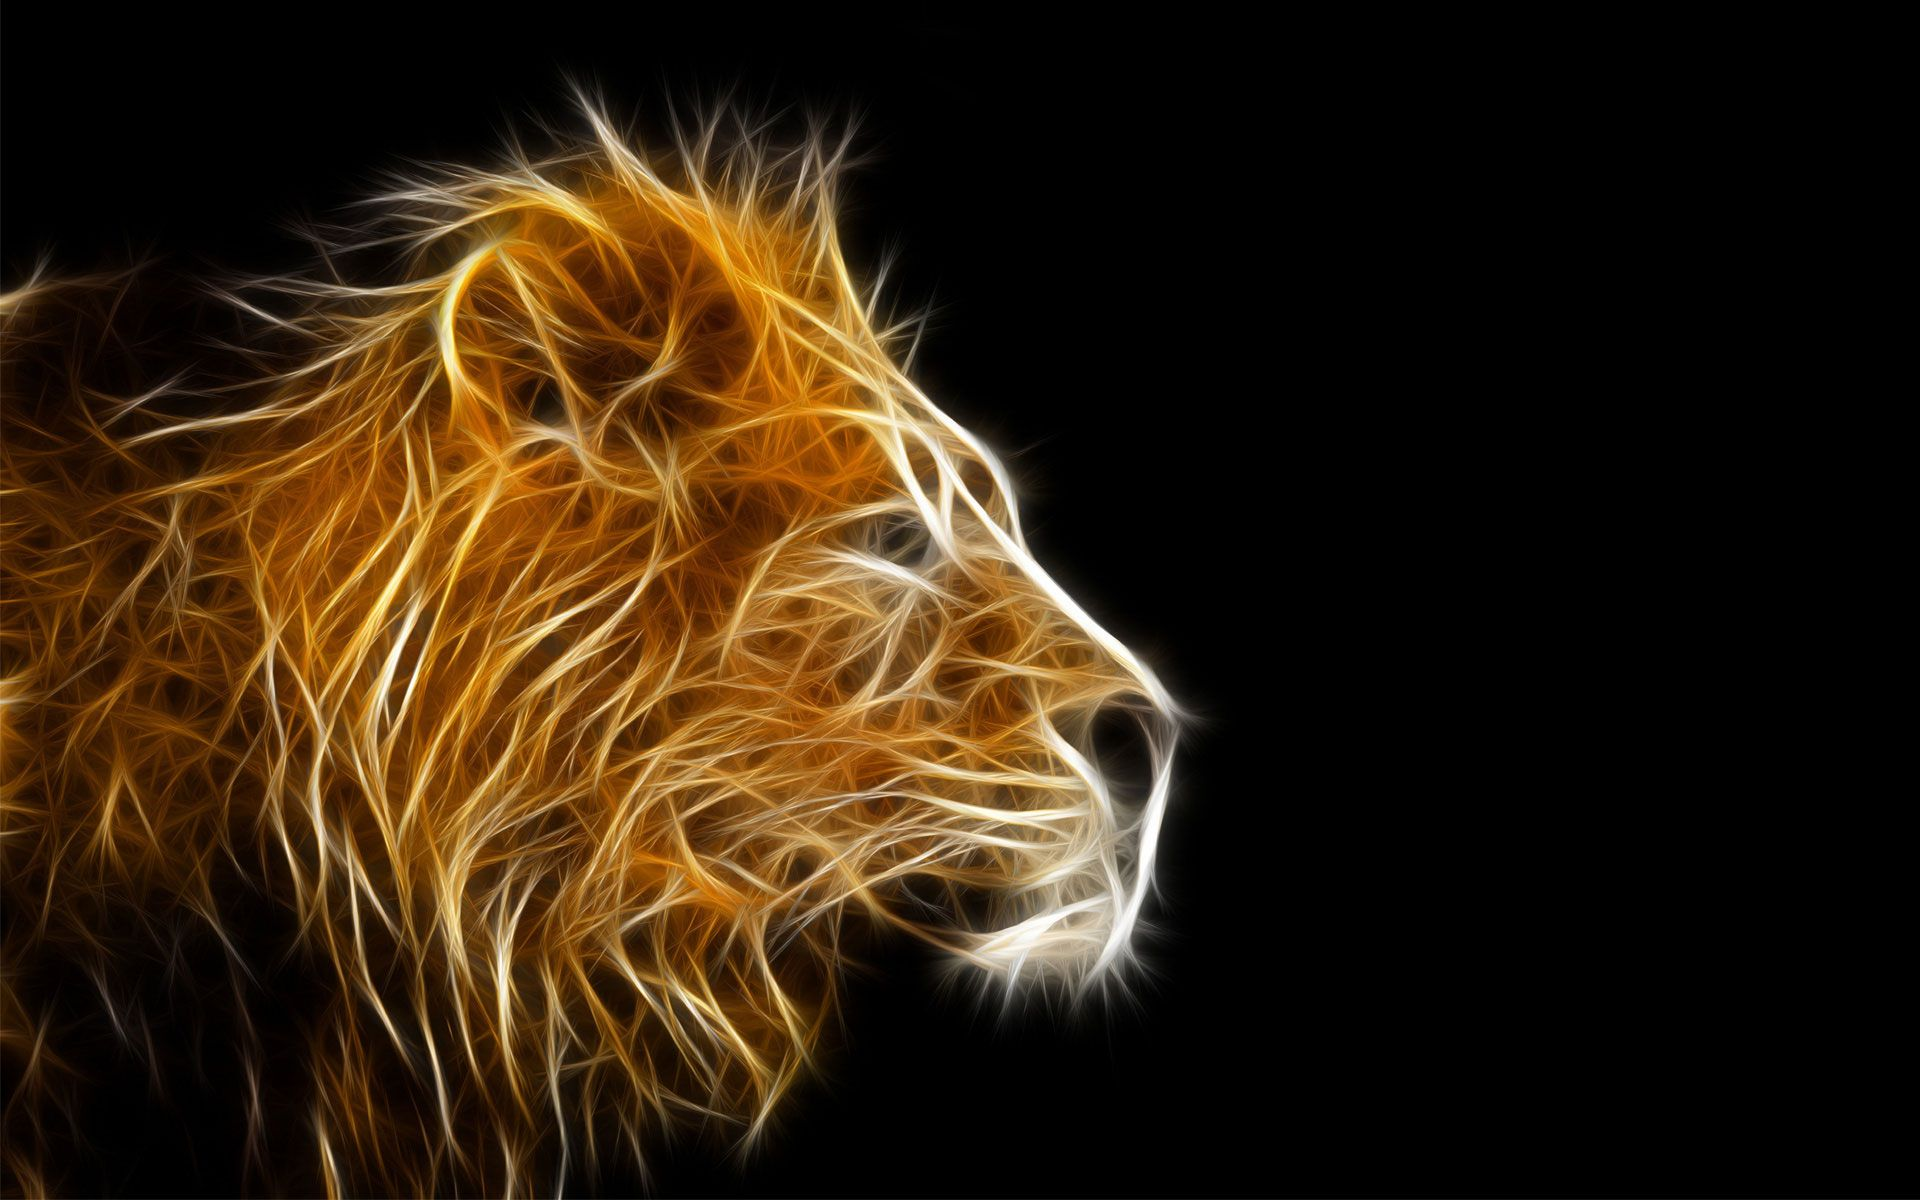 Best D Animal Wallpaper HD Animated Animal Wallpaper | wallpapers ... for Angry Lion Animation  150ifm